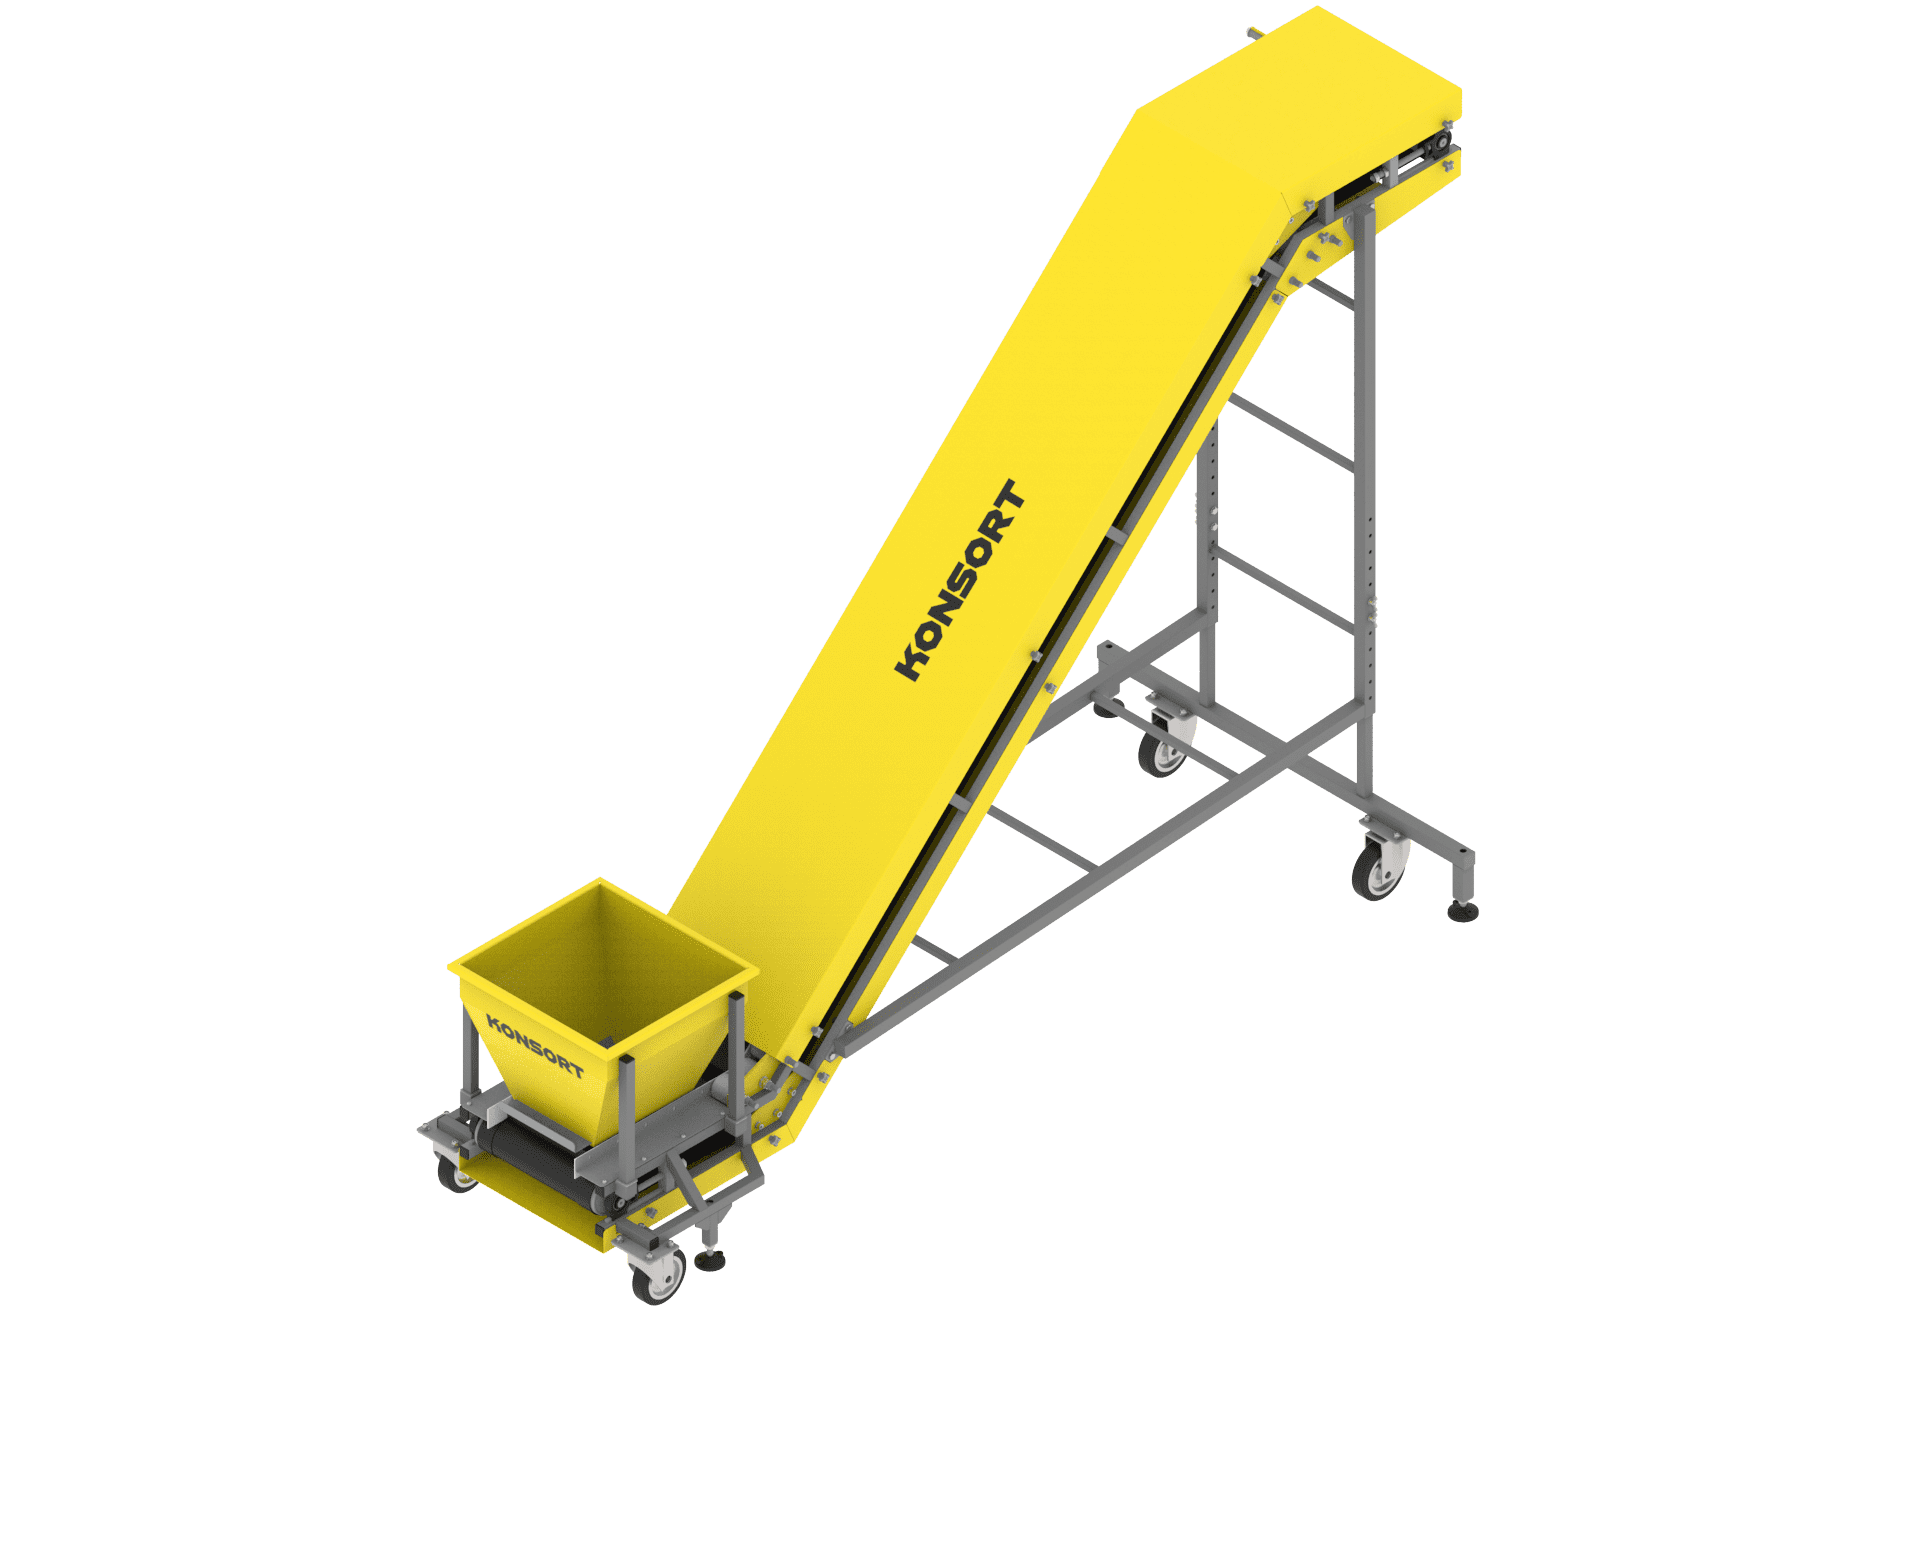 Z-shaped conveyor